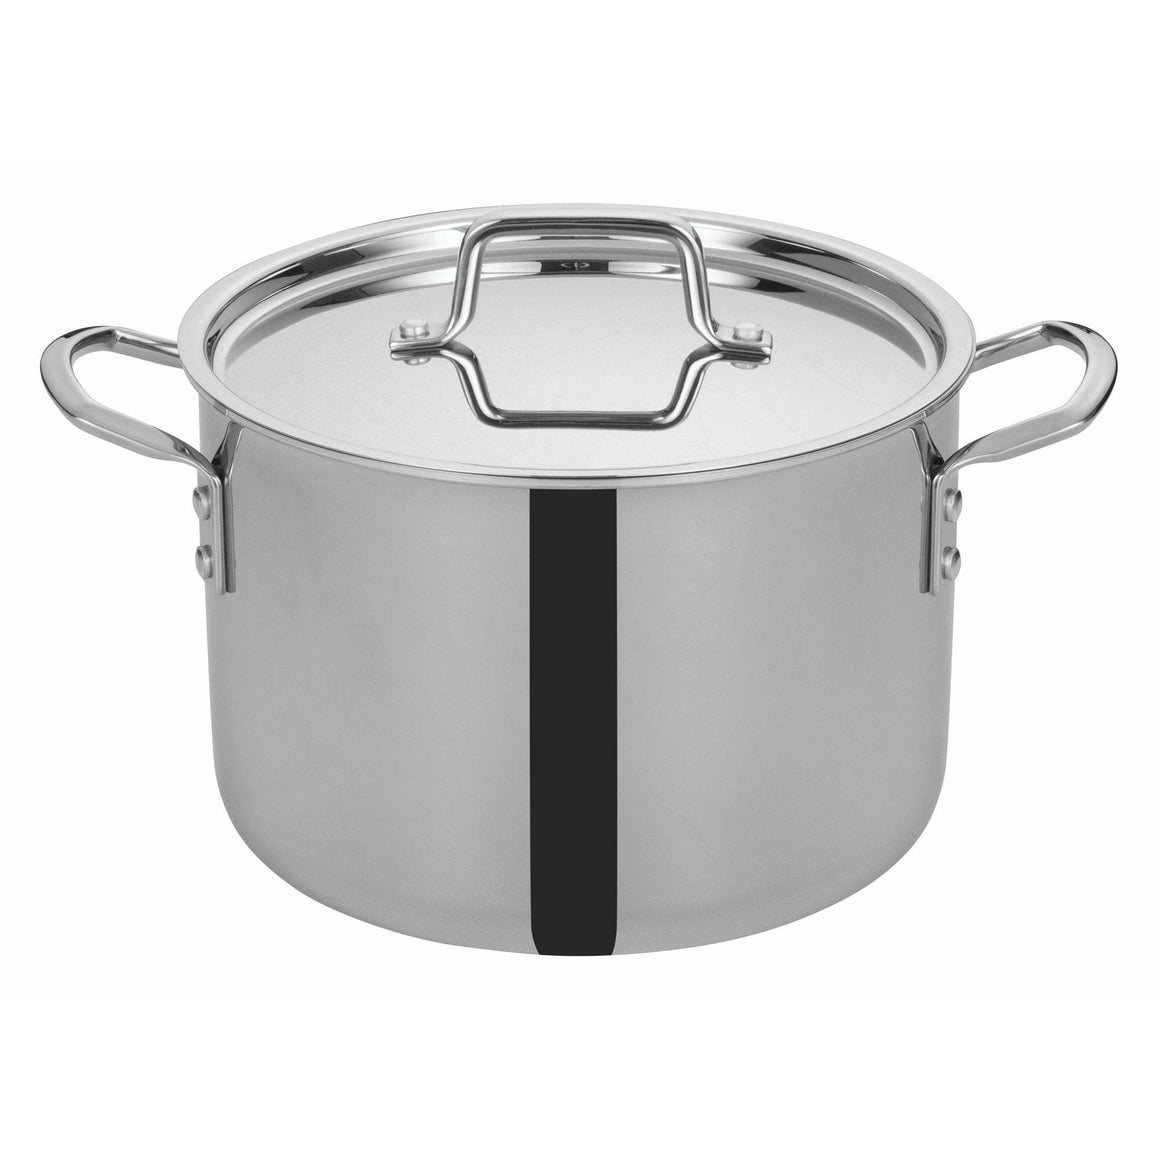 "Winco - TGSP-8 - TRI-GEN™ Tri-Ply Stock Pot w/Cover, 8Qt, 9-1/2""Dia - Cookware"